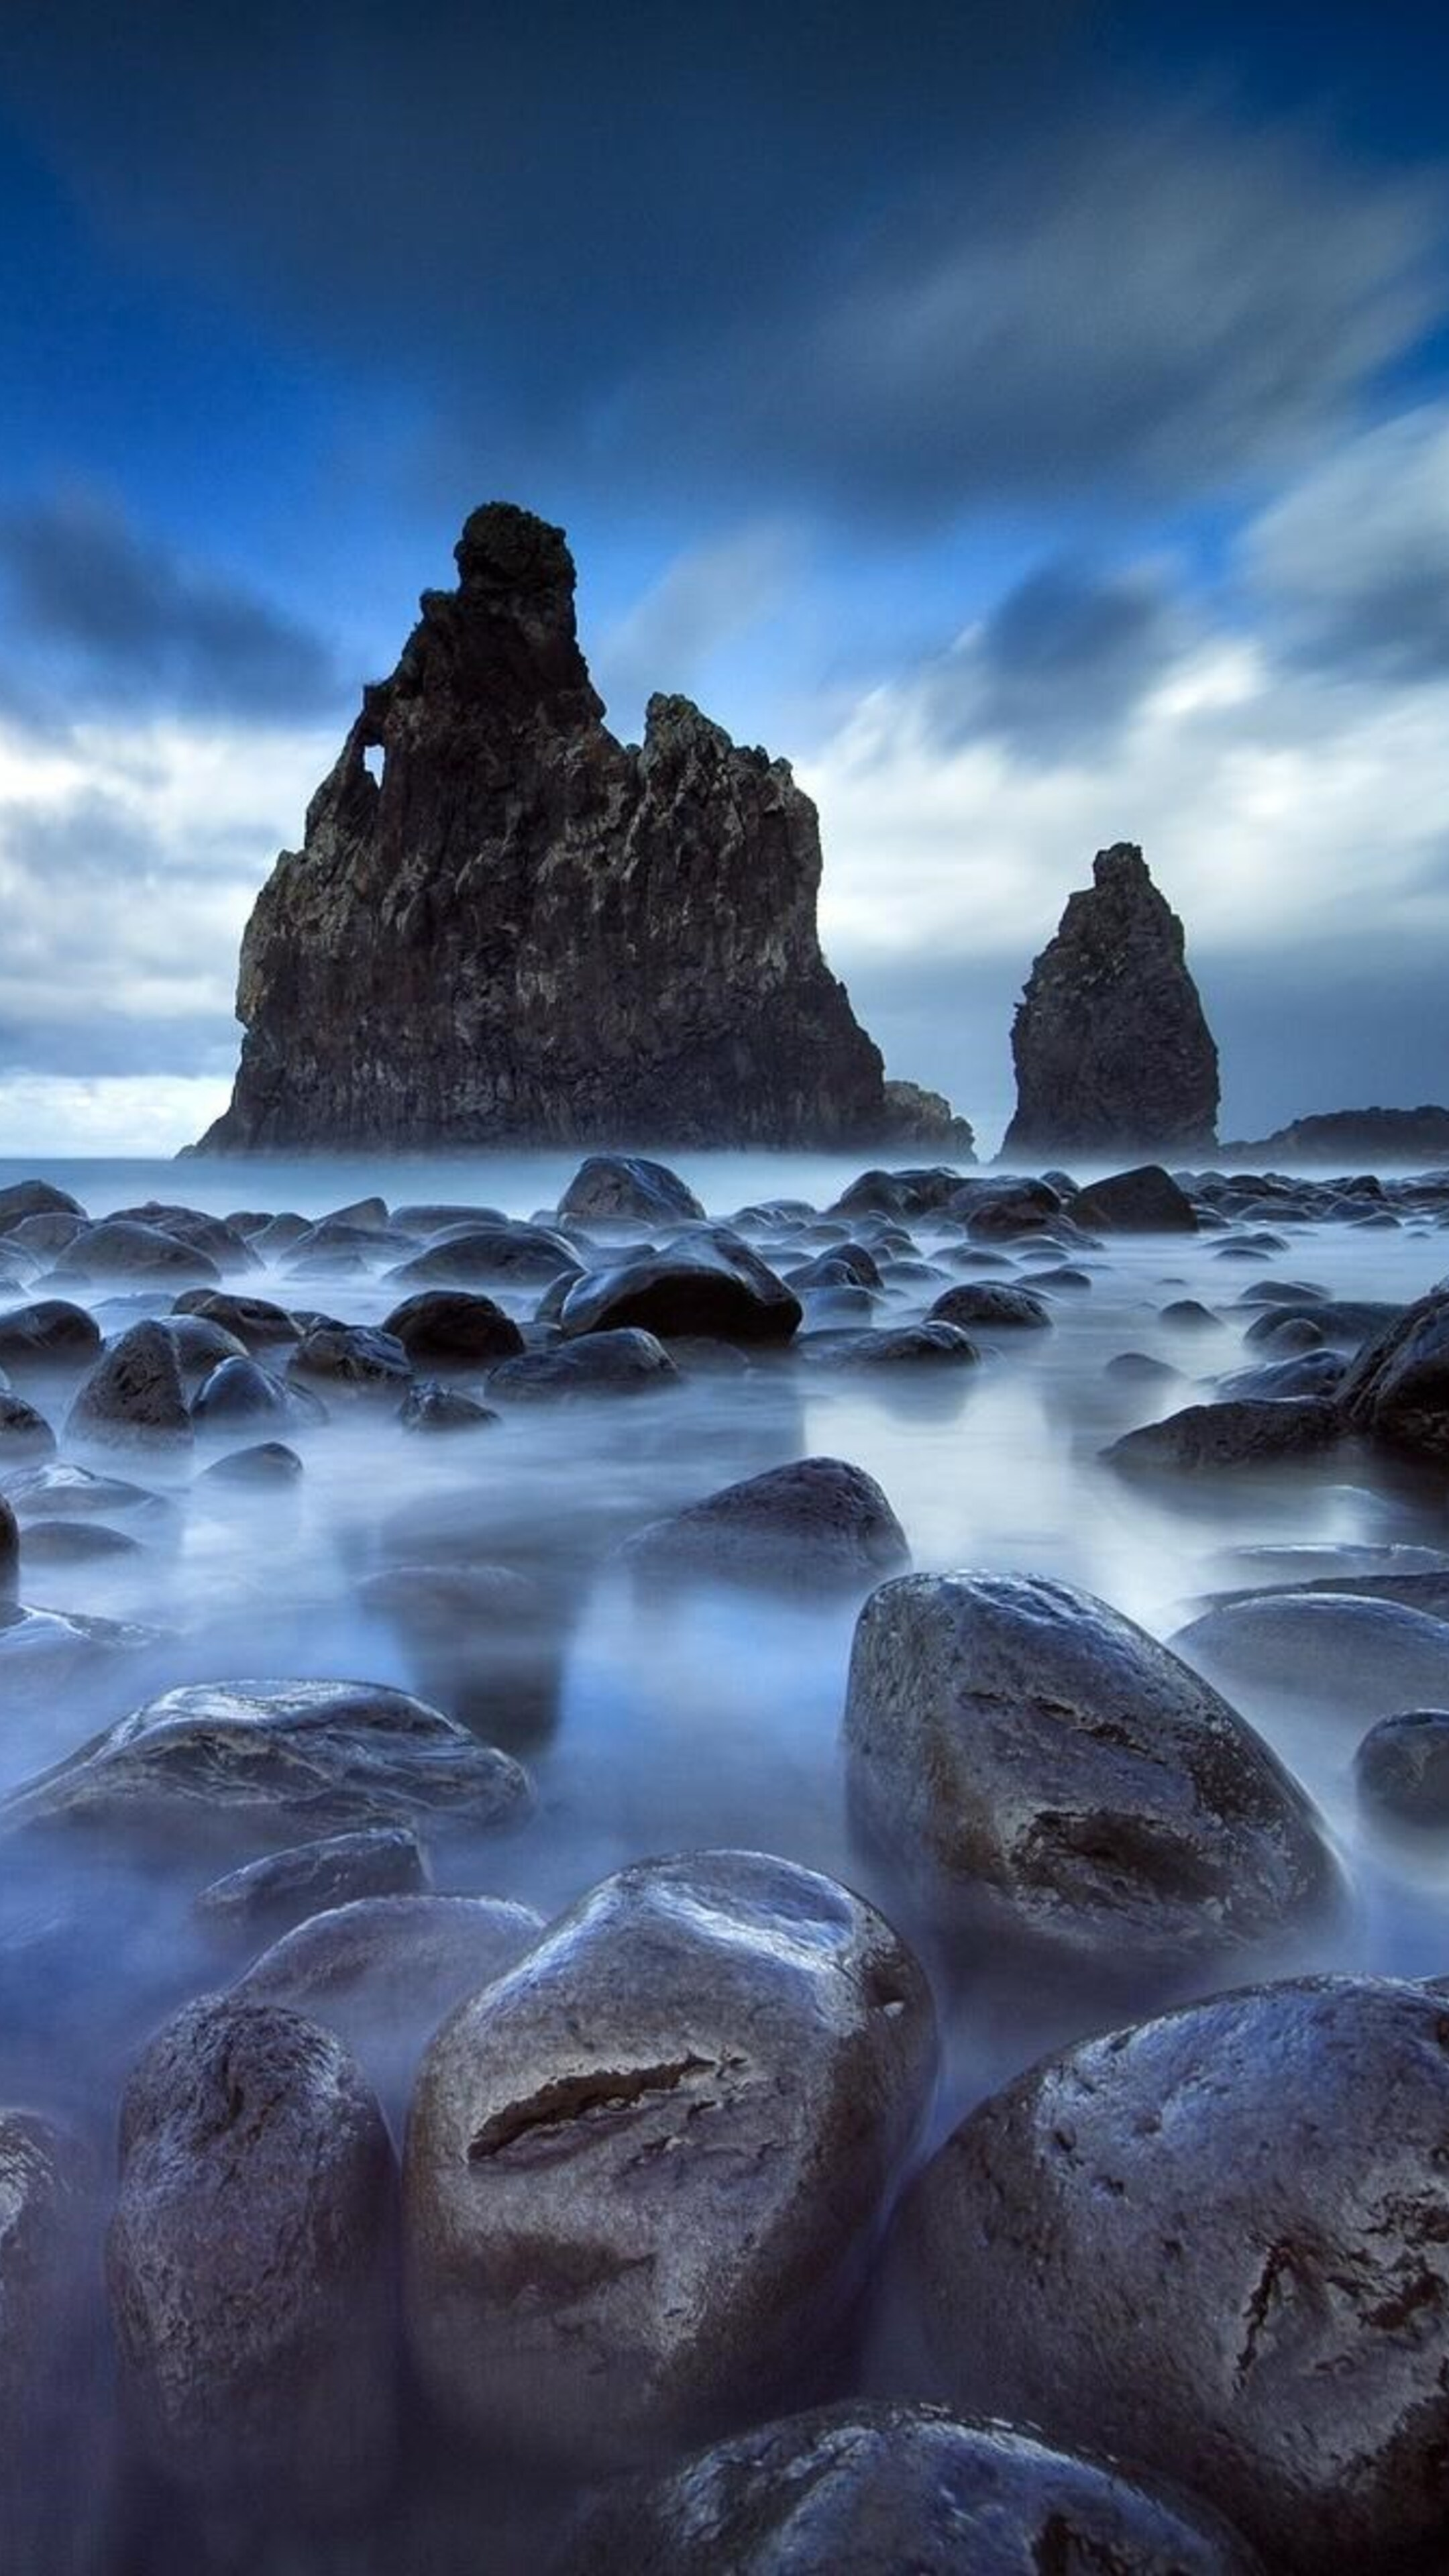 2160x3840 nature rocks sony xperia x xz z5 premium hd 4k - 2160x3840 wallpaper ...